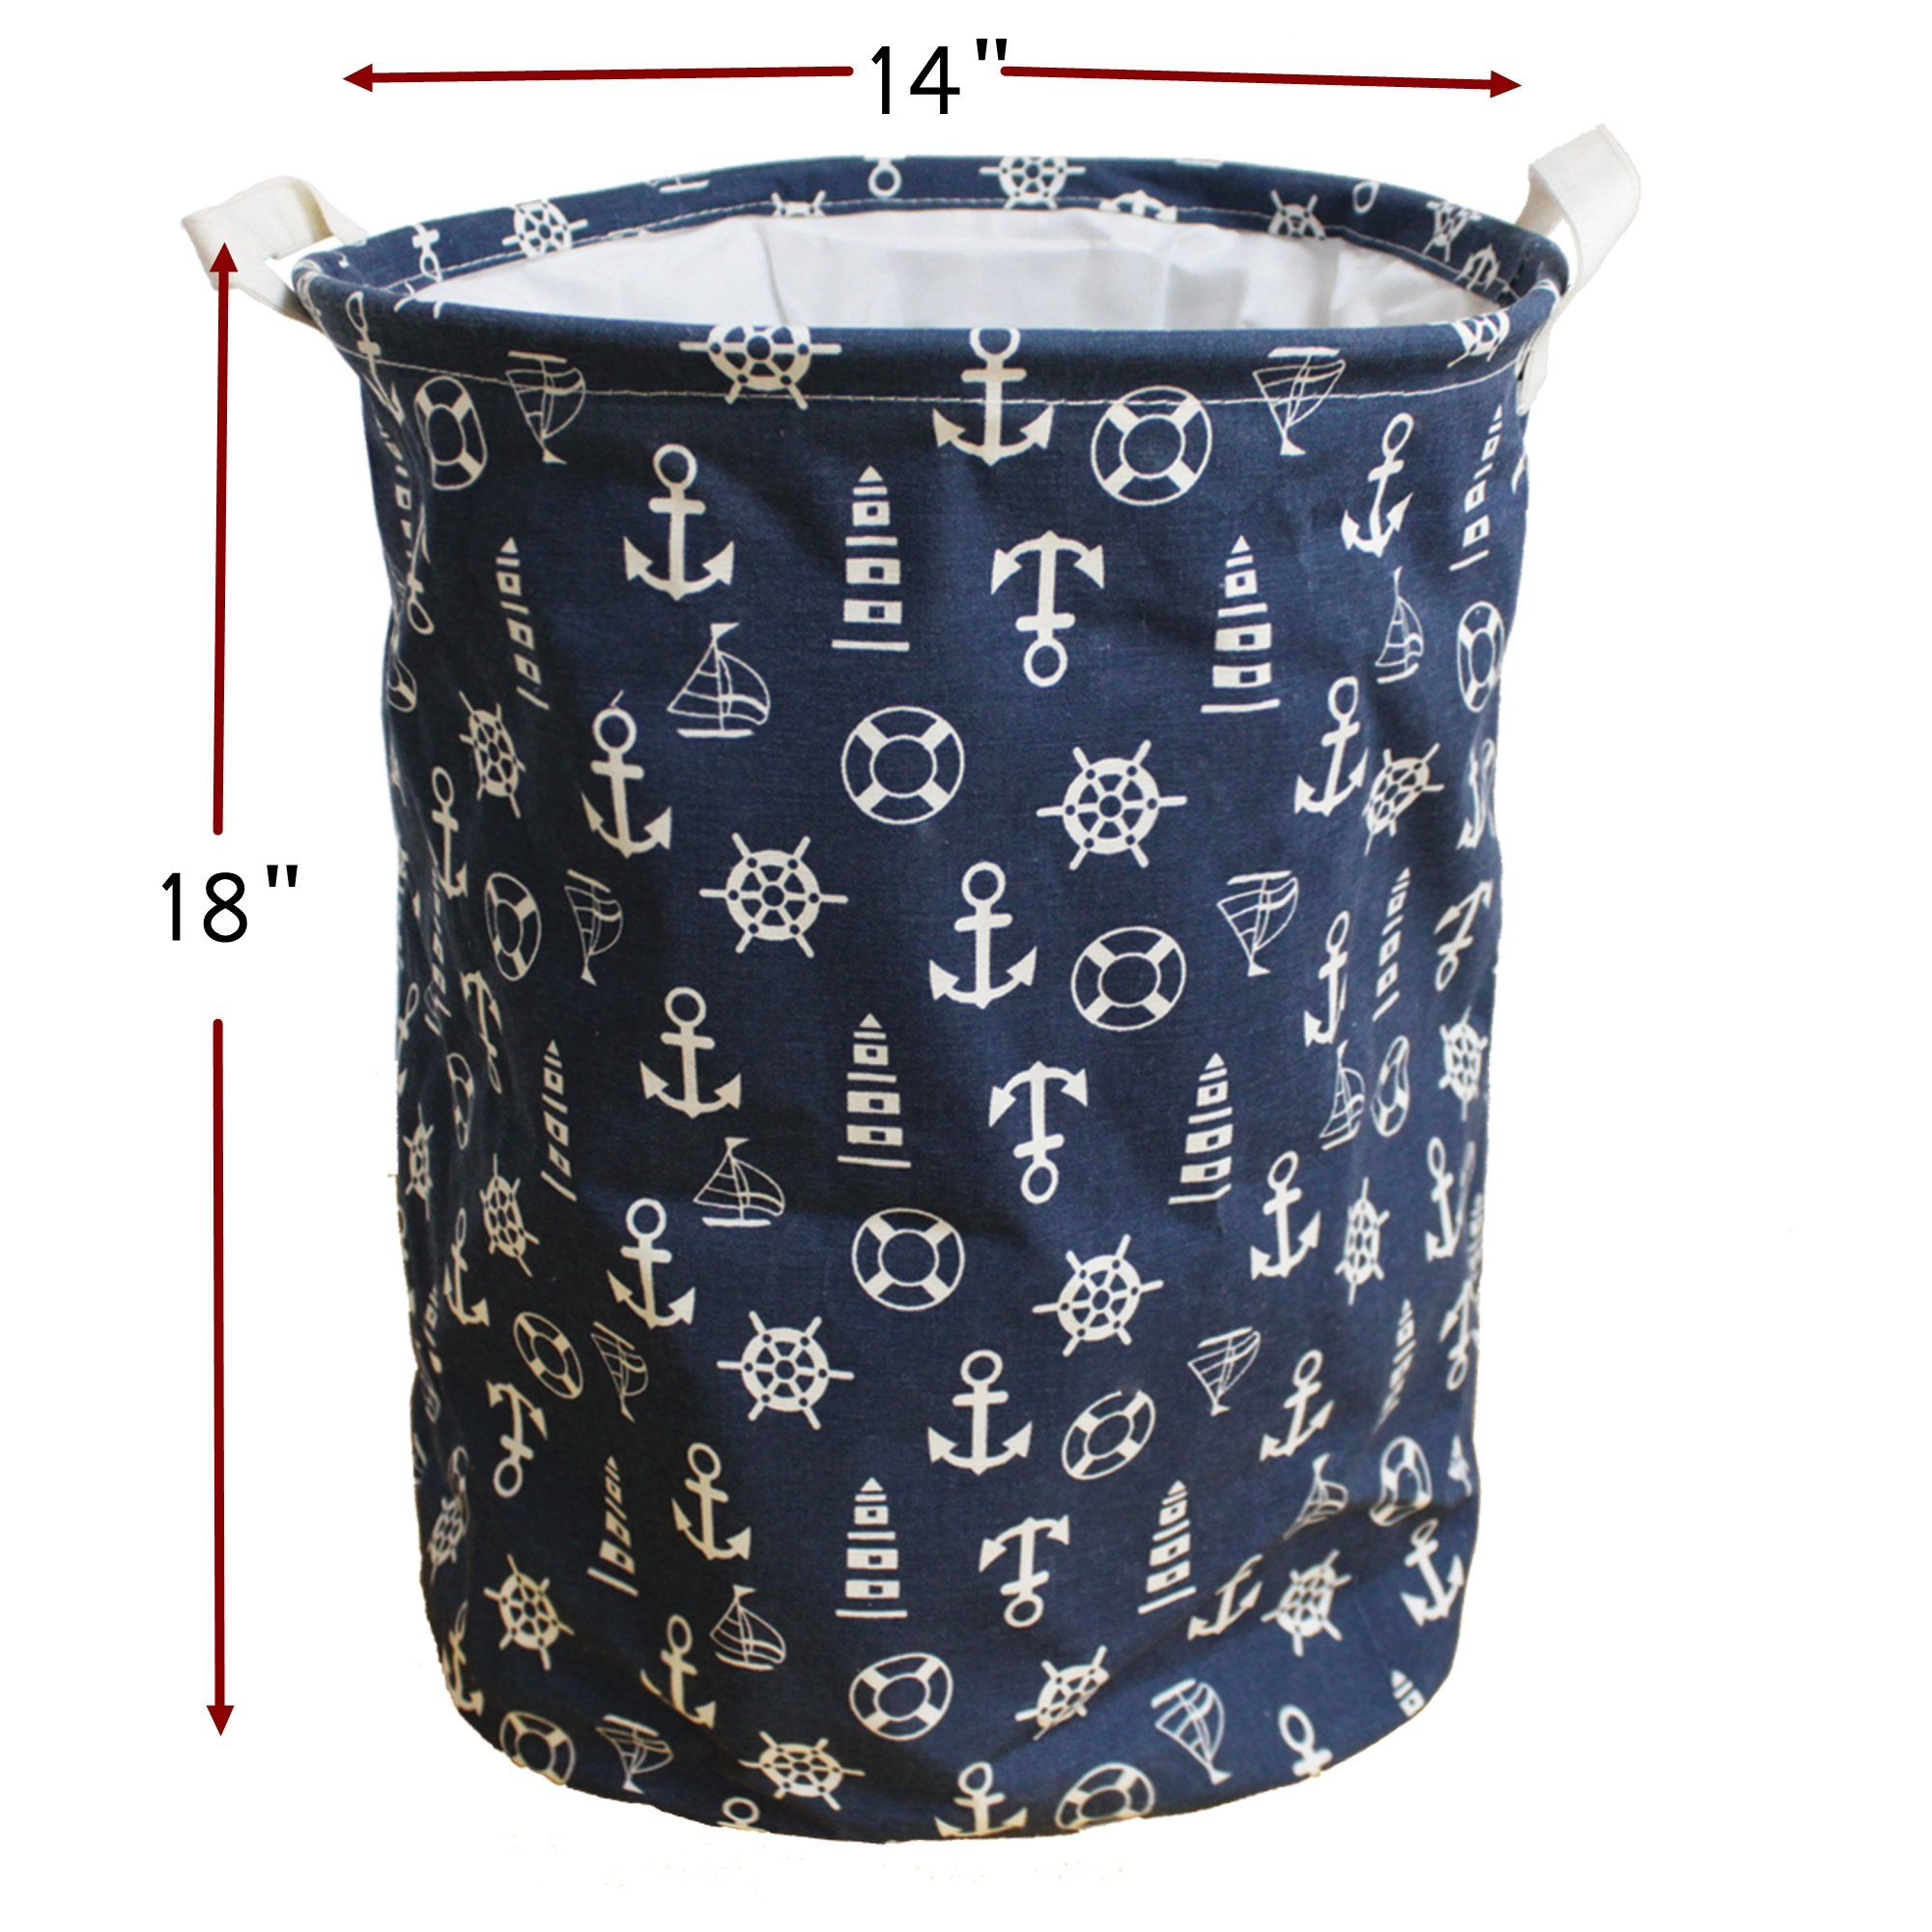 Clothes Storage Basket Toy Organizer With Handles Mediterranean Style For Bedrooms Nursery Closets By Orino Navy Blue Check Out This Great Product